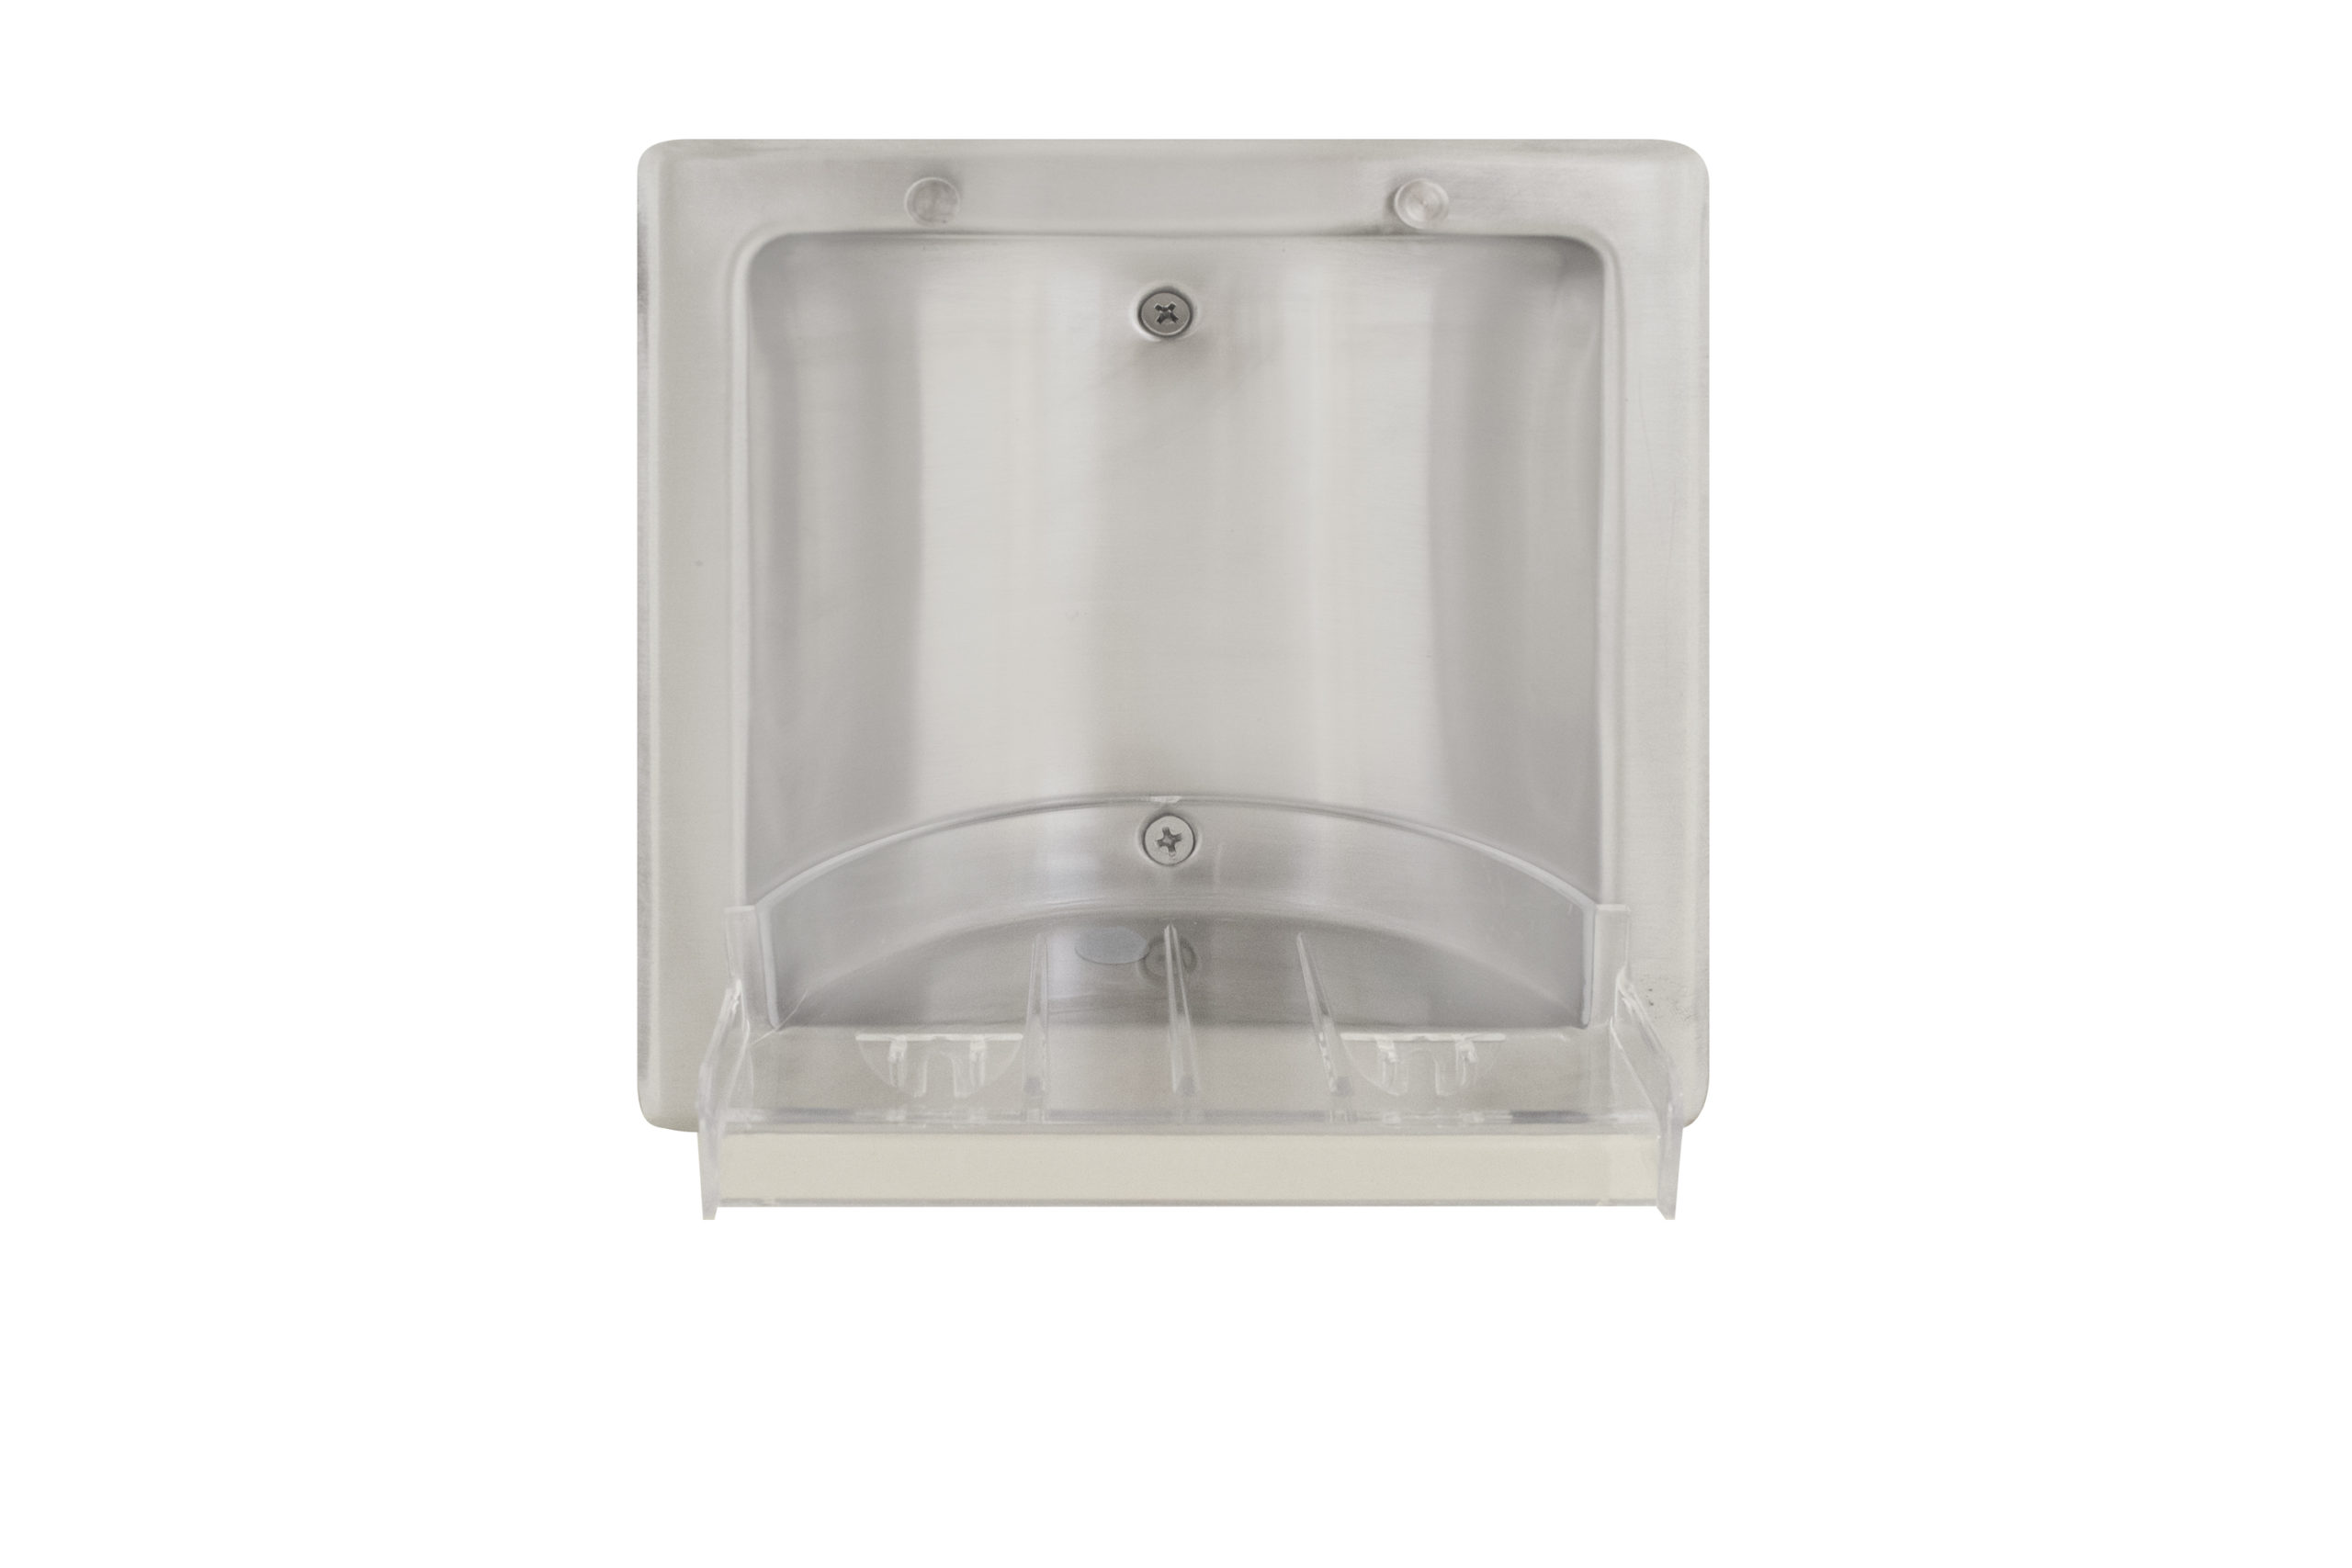 Bradley 9353 Recessed Stainless Steel Soap Dish - Satin